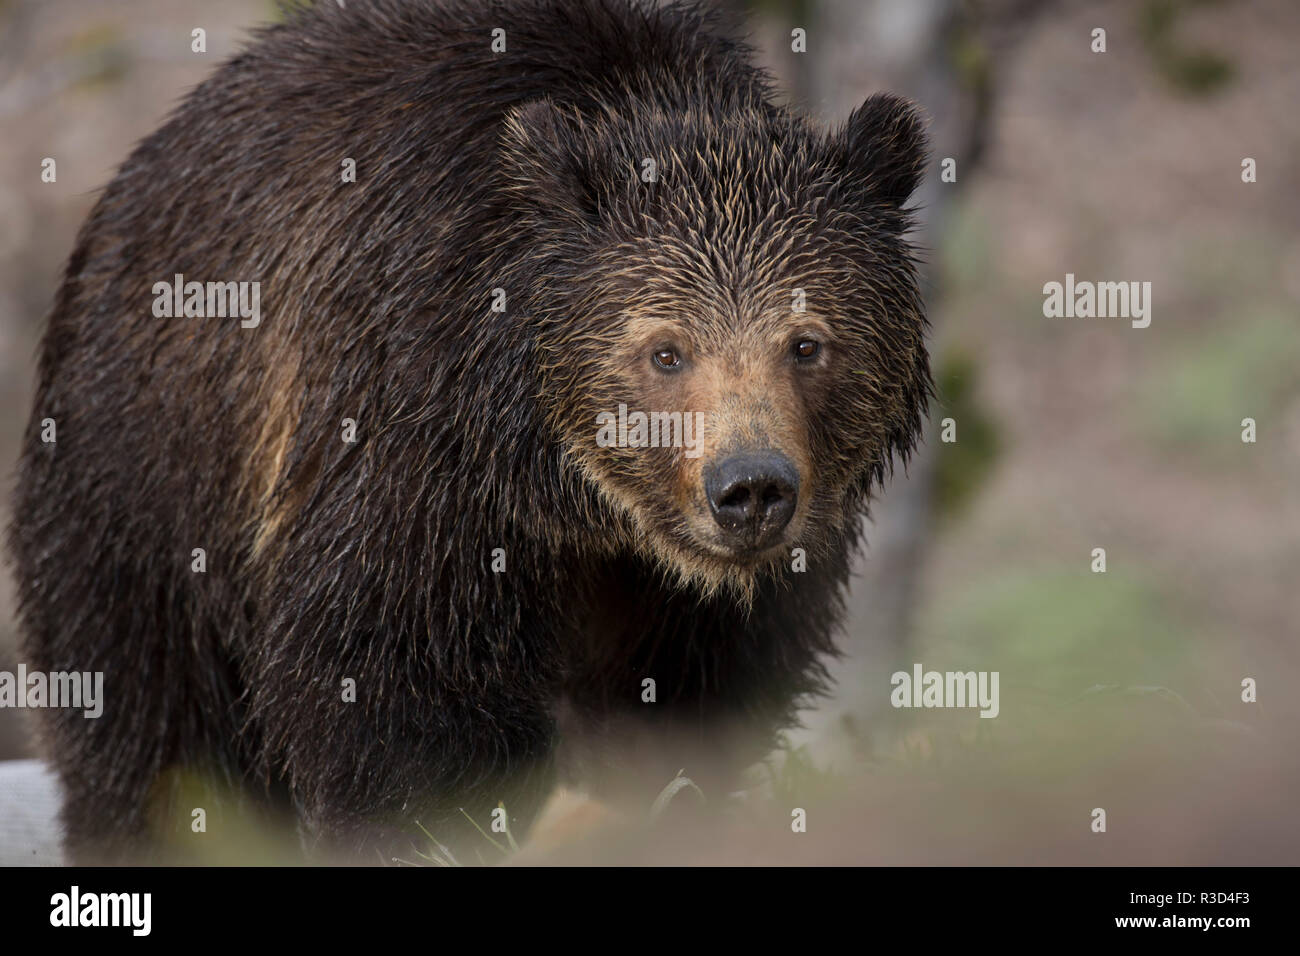 USA, Wyoming, Yellowstone National Park. Grizzly bear close-up. - Stock Image